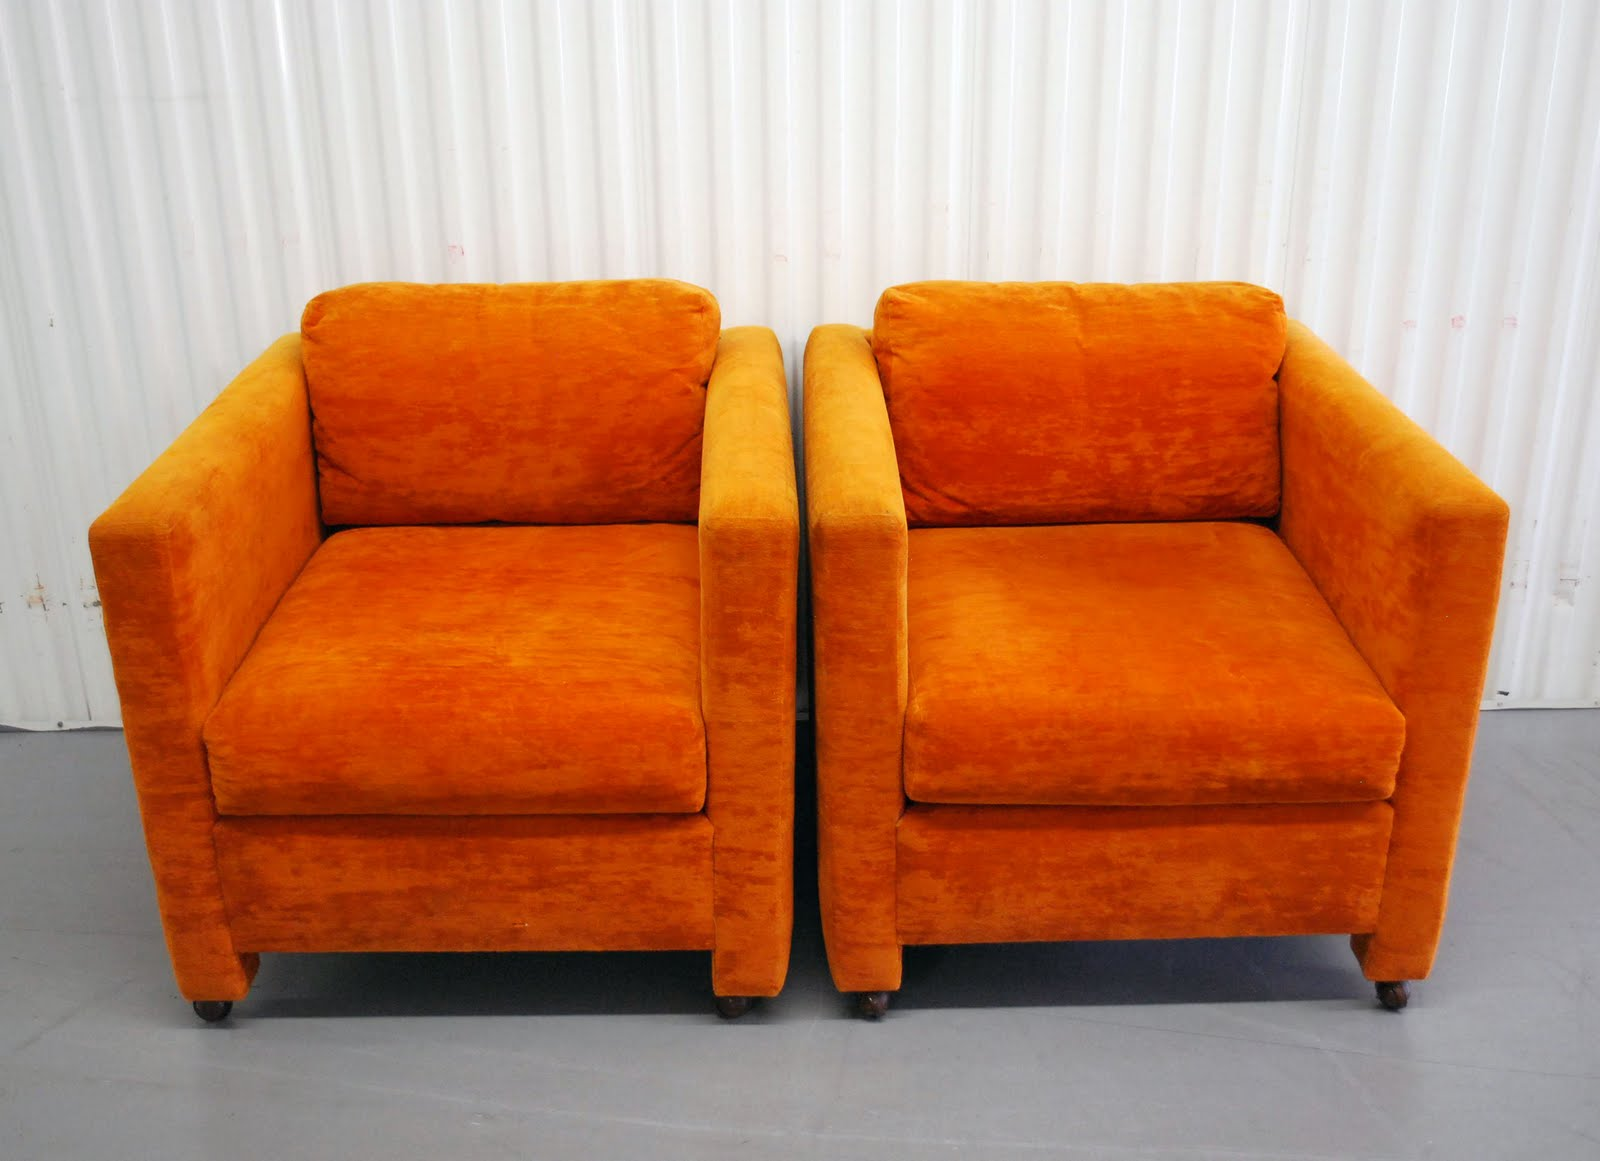 Modern Orange Chair Junk2funk Mid Century Modern Orange Club Chairs